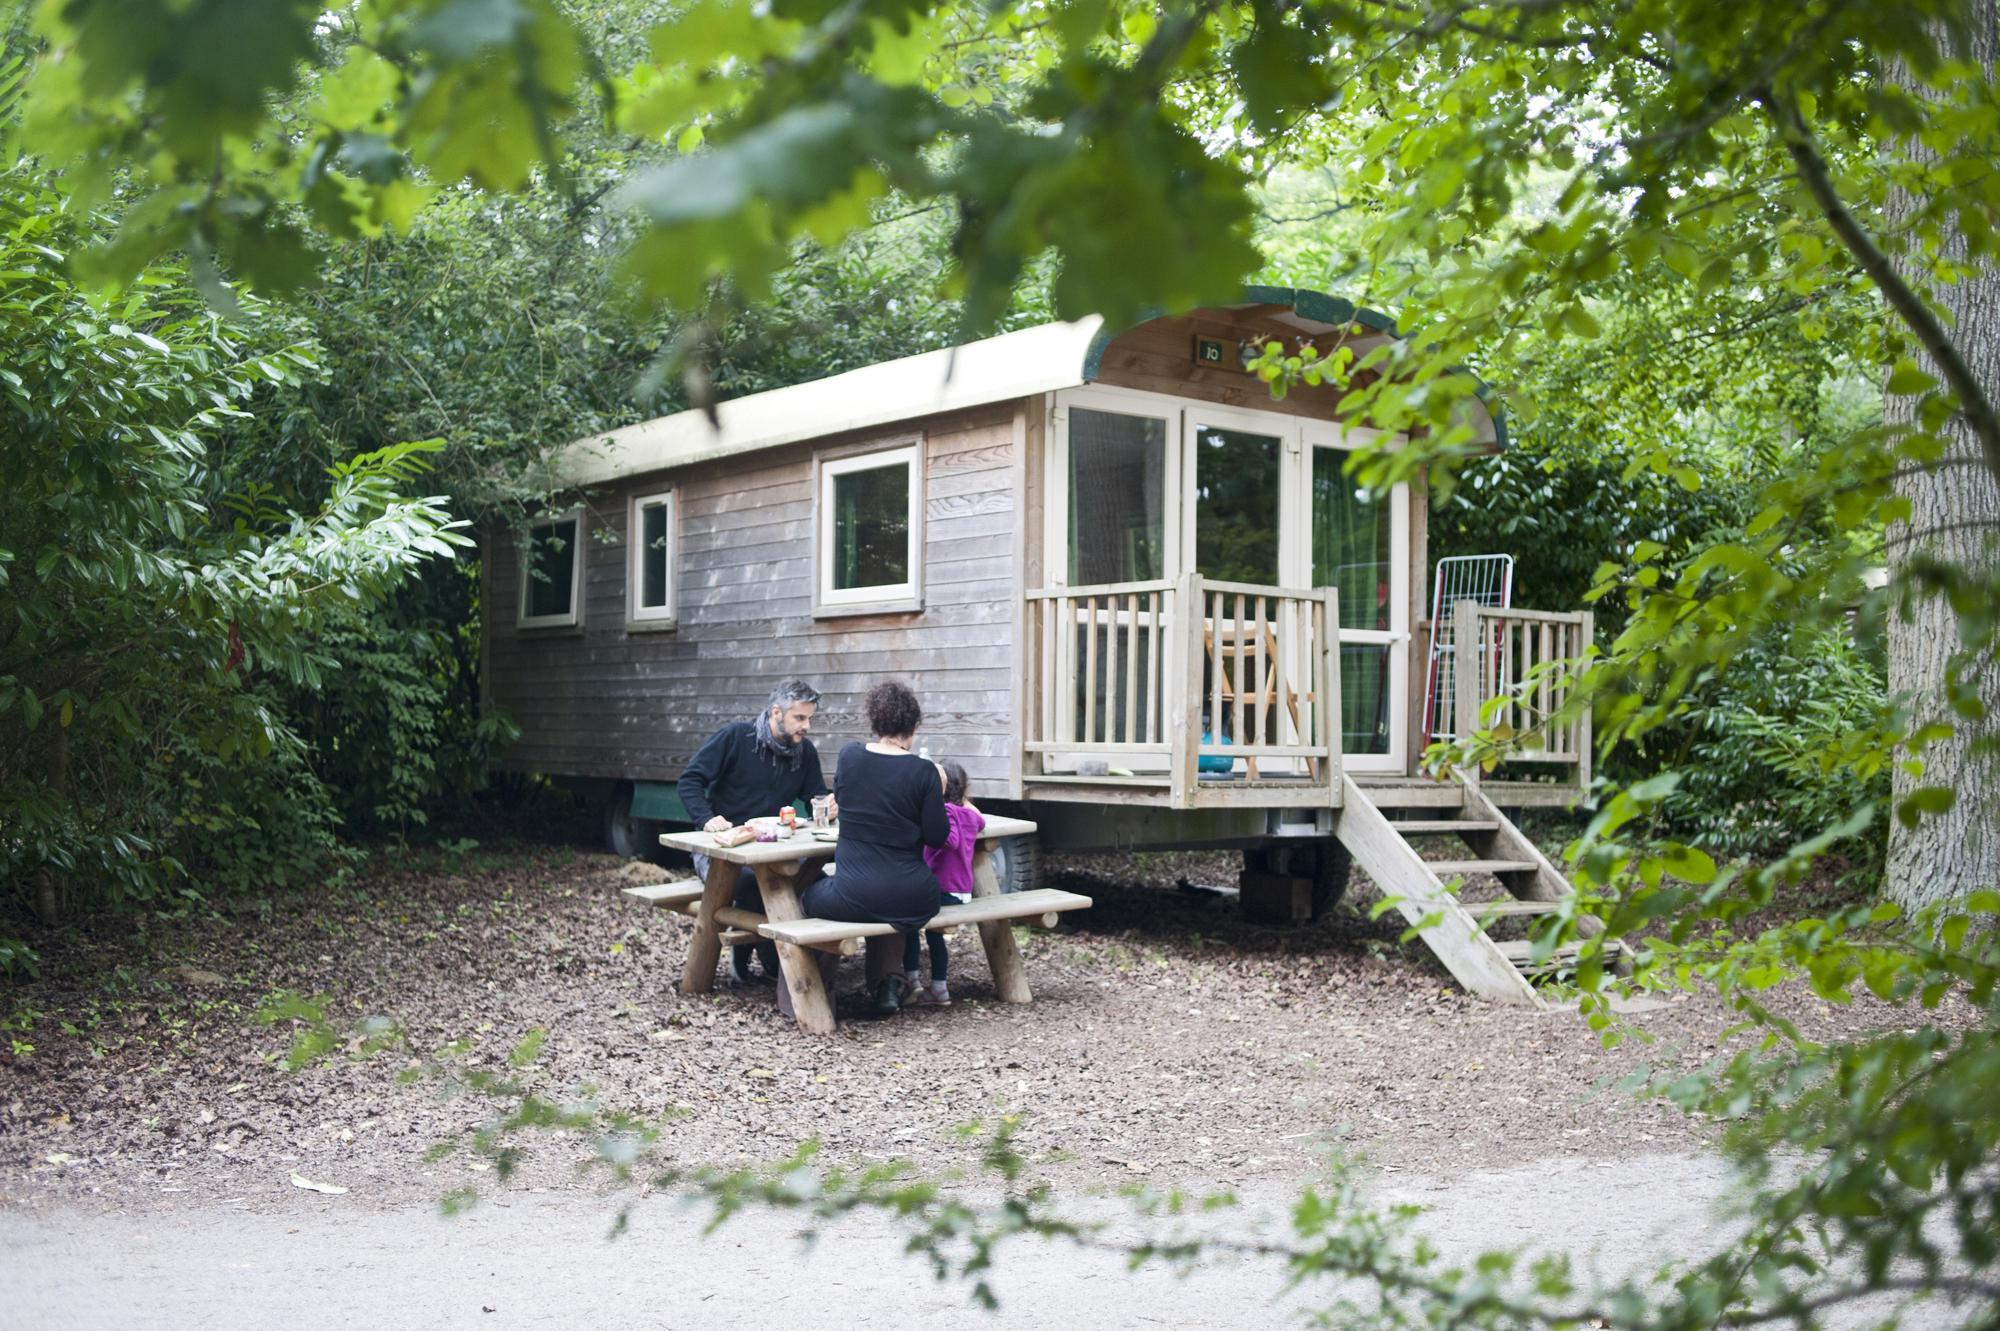 Glamping in North East France | Yurts, Safari Tents, Treehouses and more